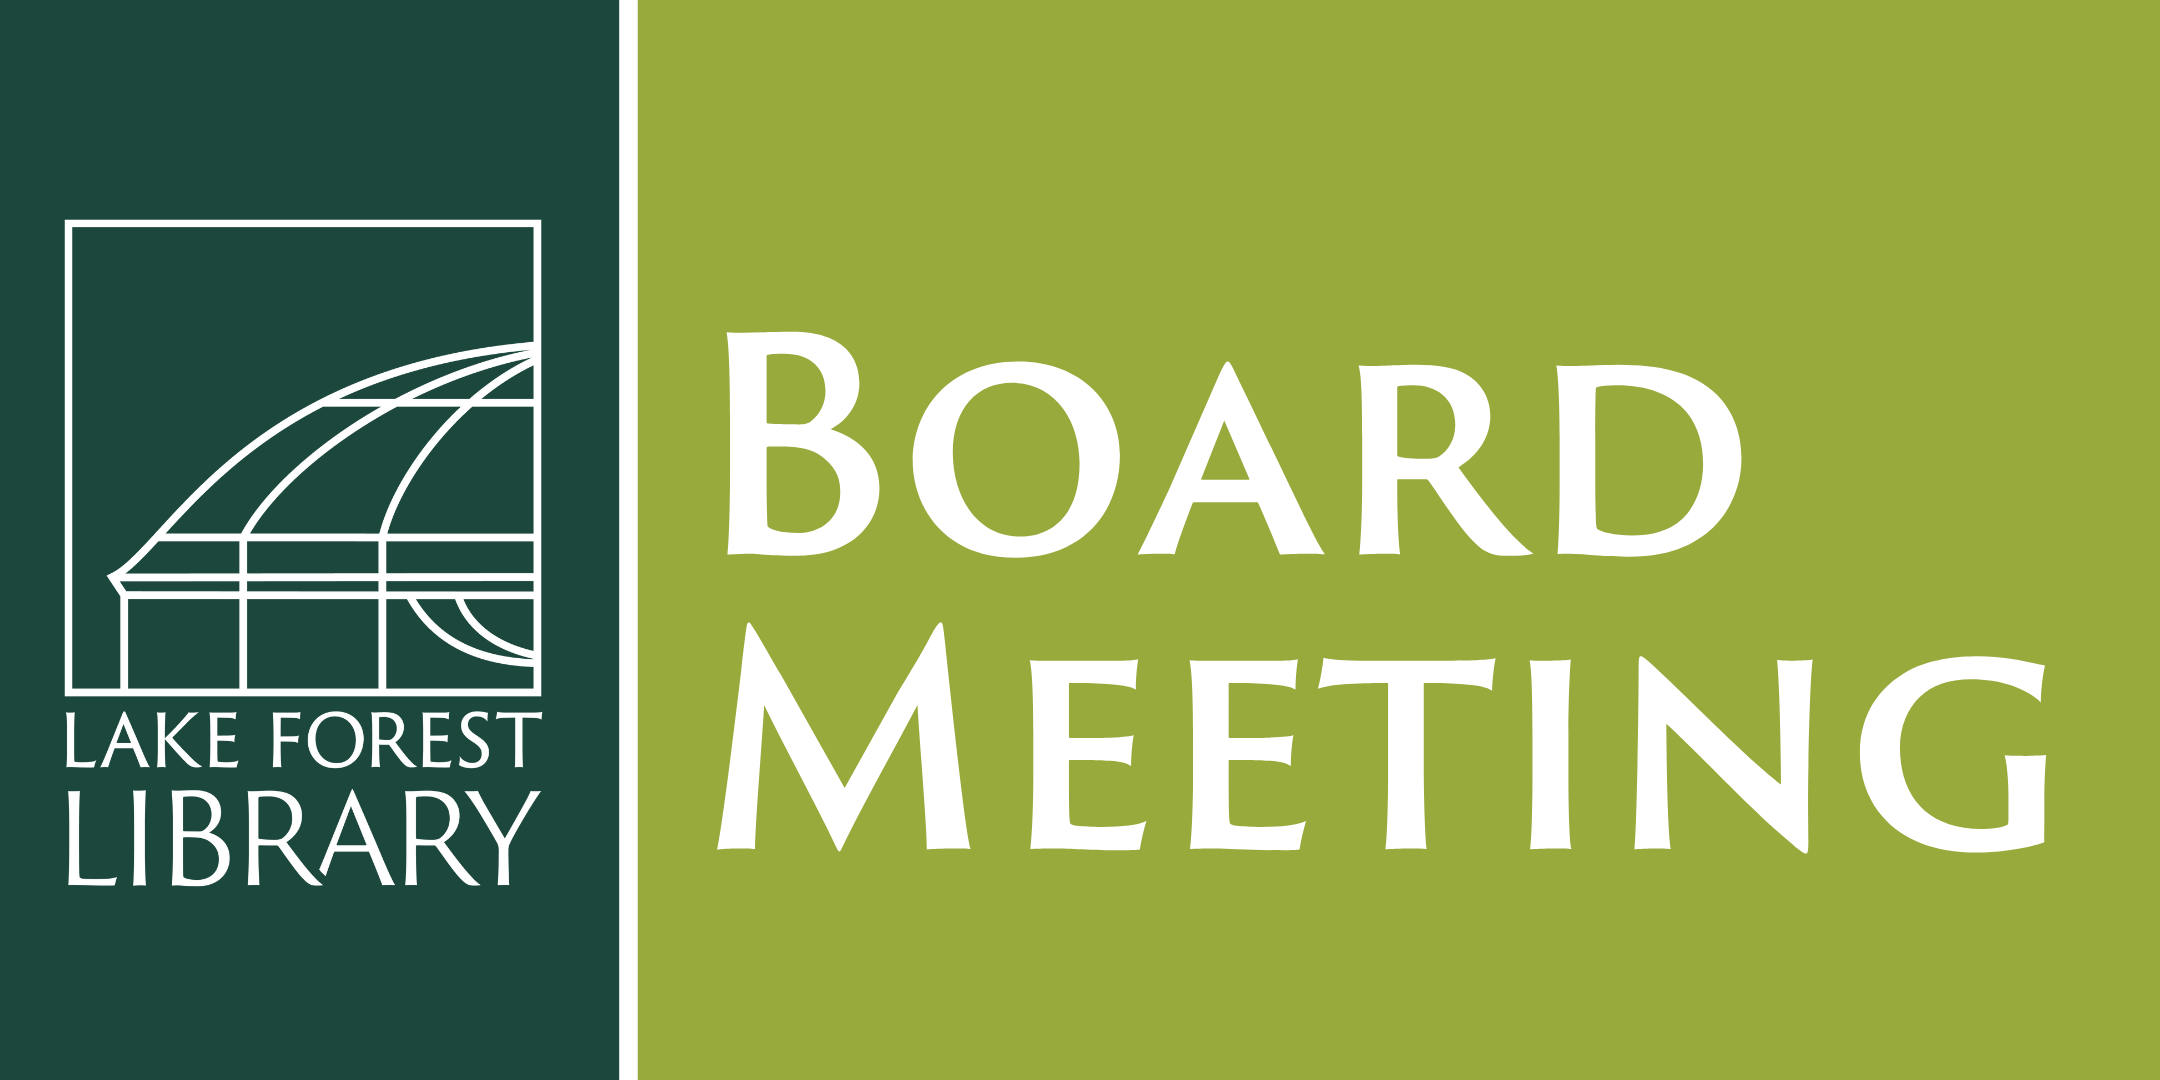 Library Board Meeting image